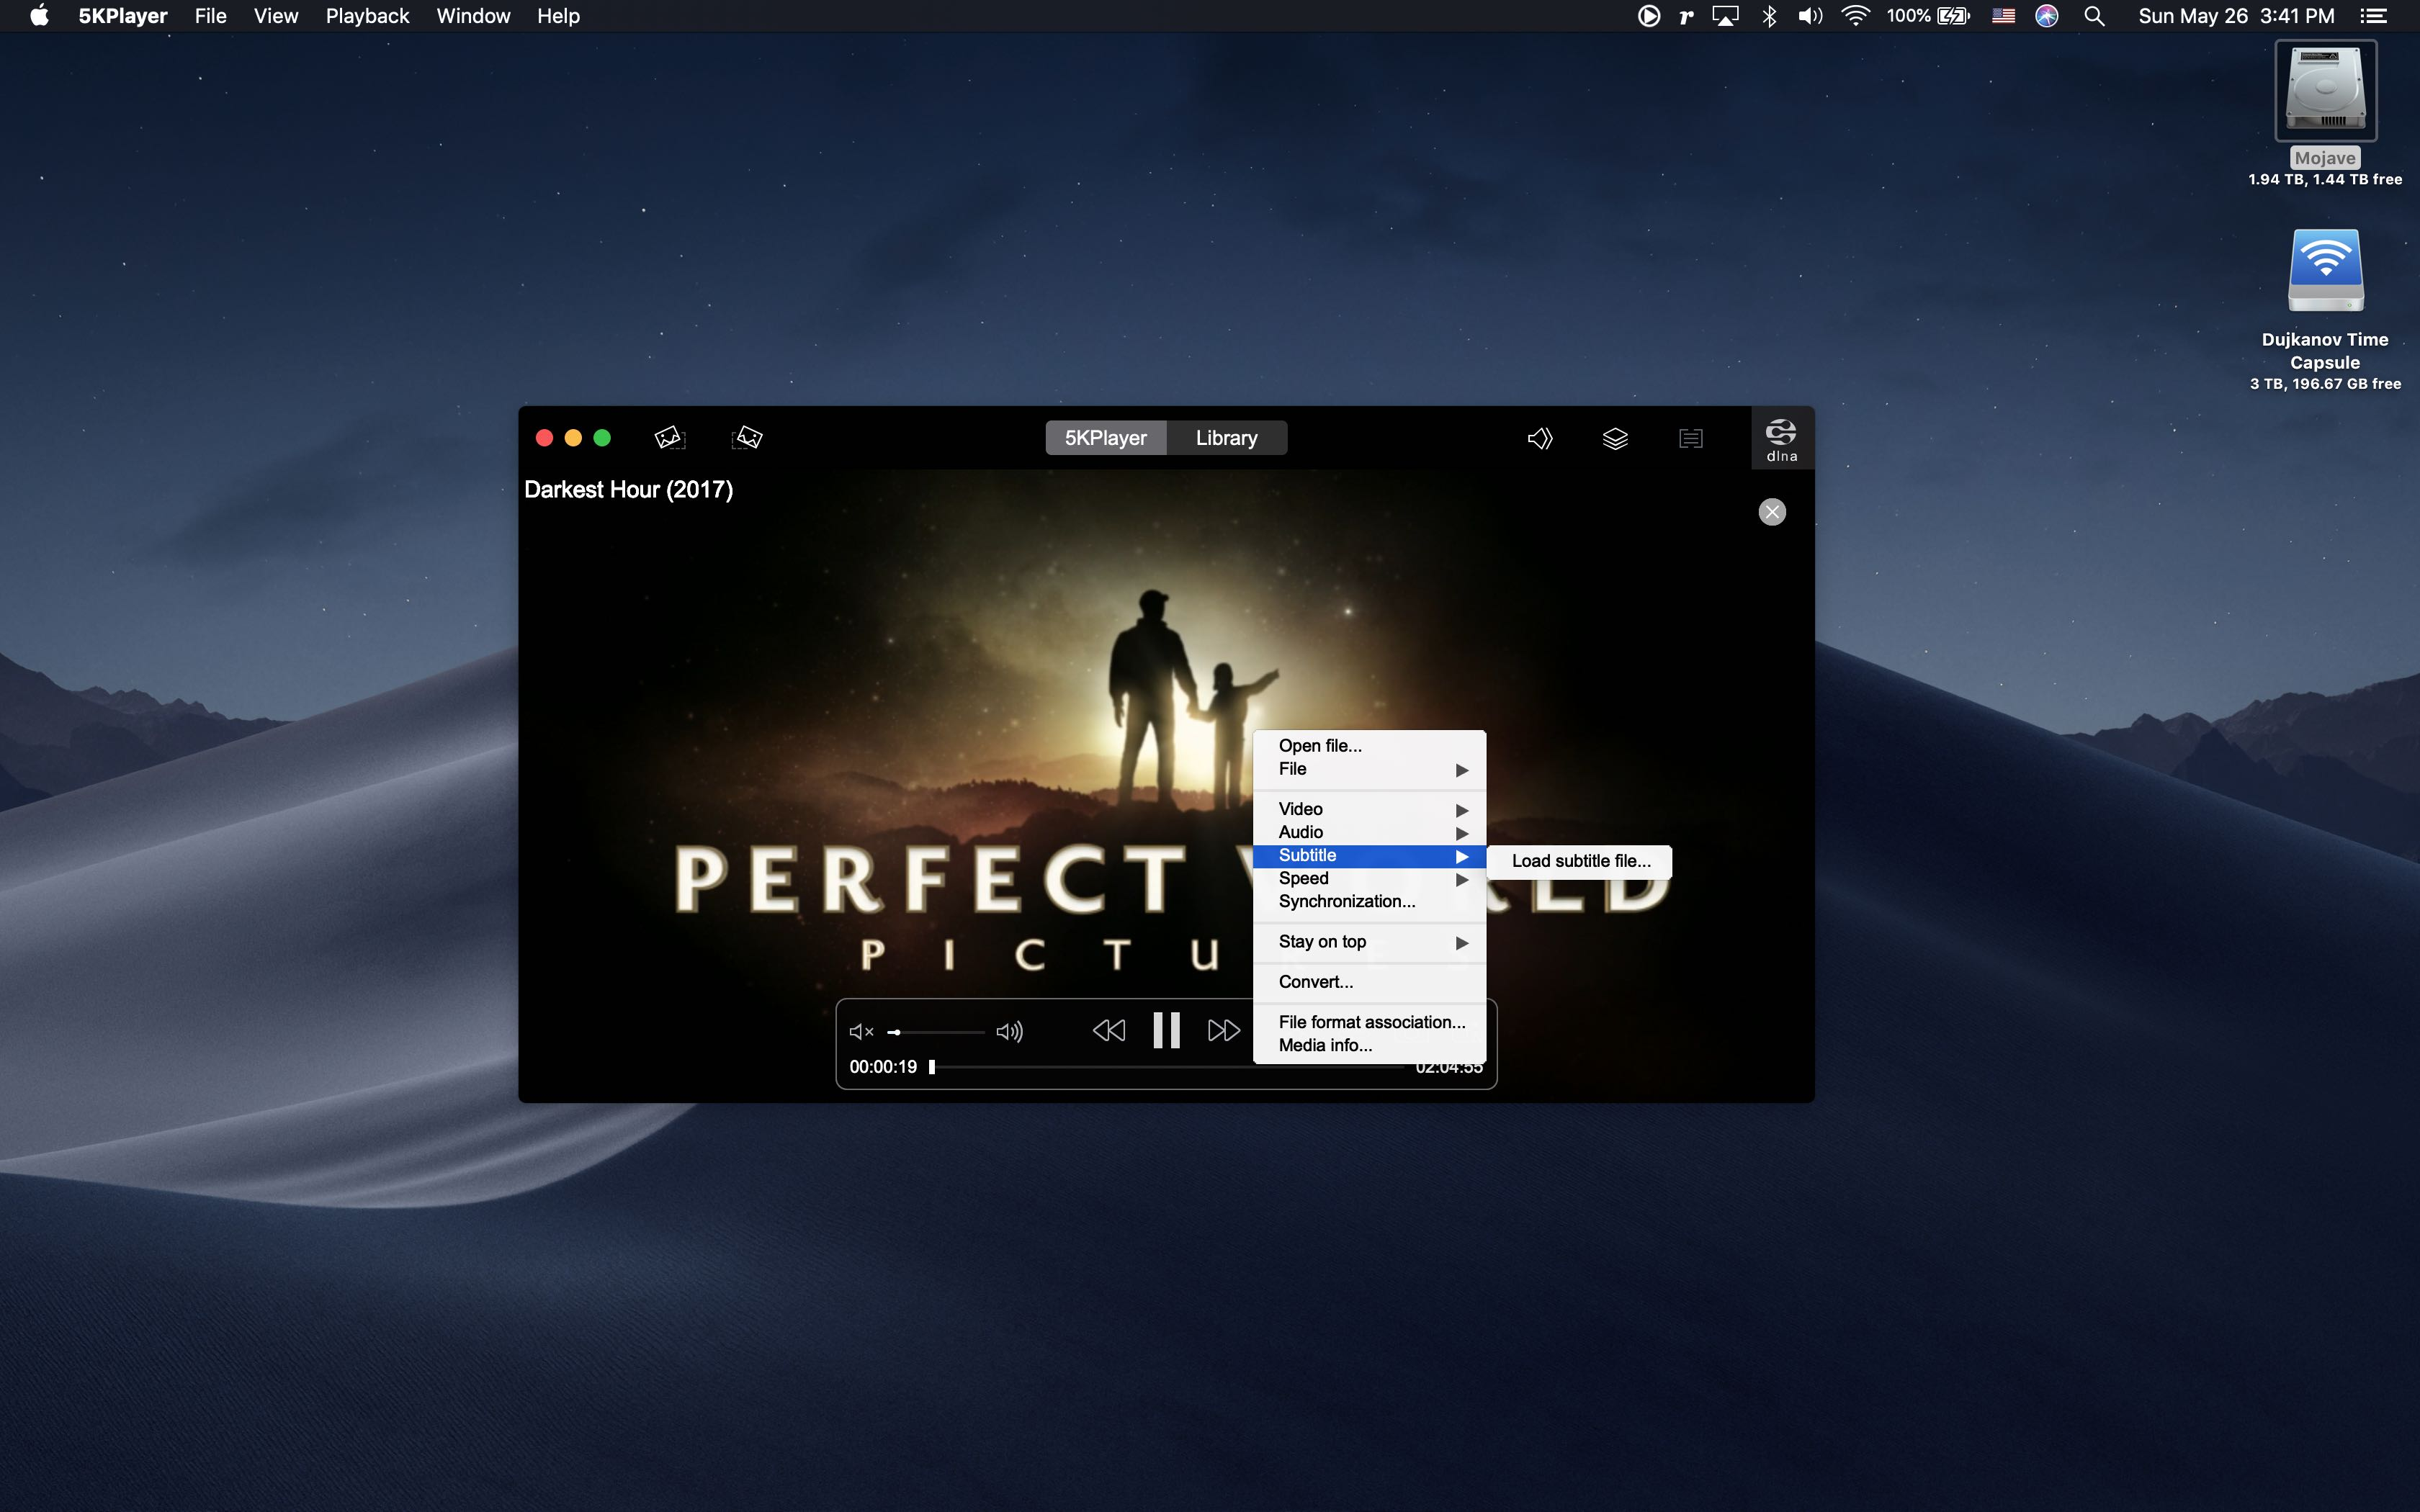 5KPlayer is a powerful UHD player that turns your Mac into